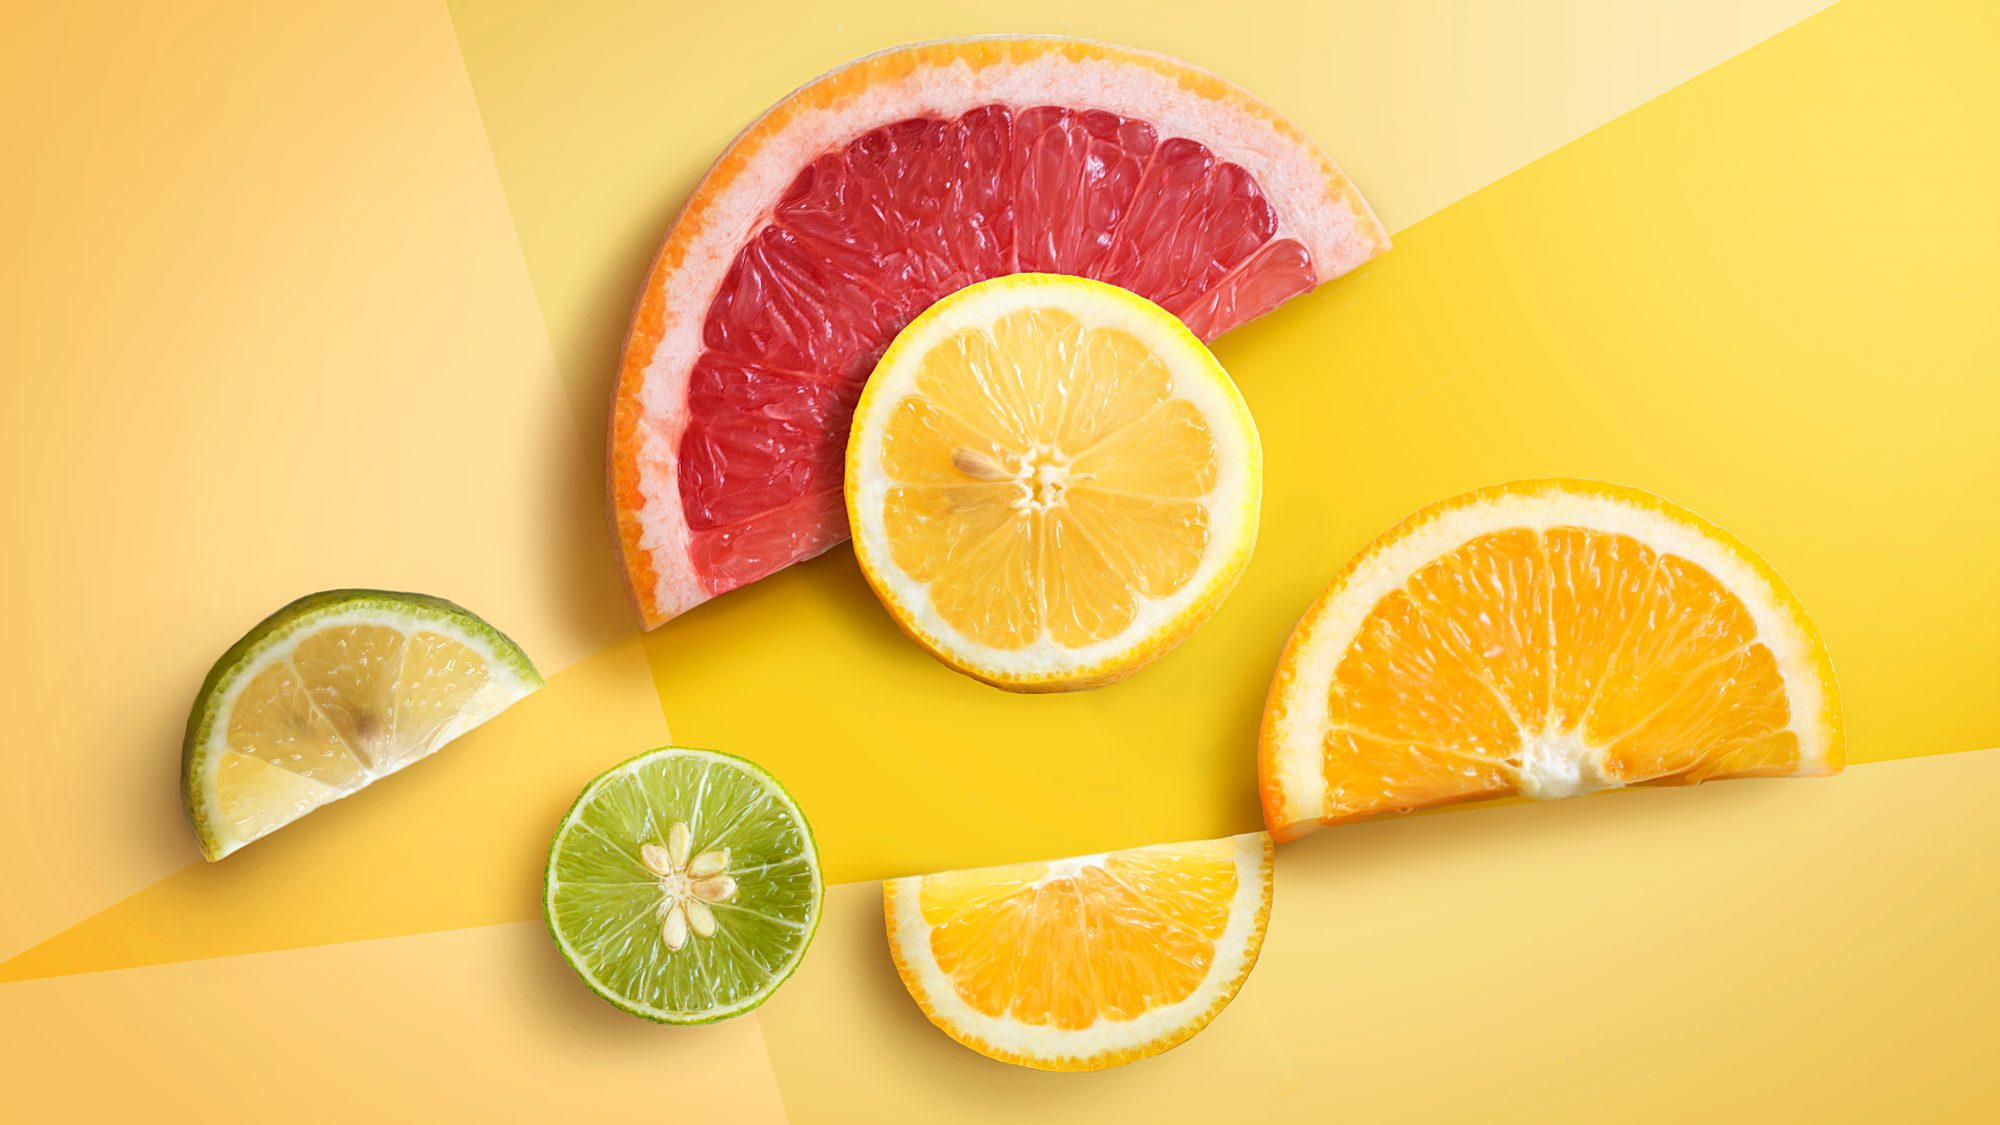 vitamin c foods: citrus fruit slices